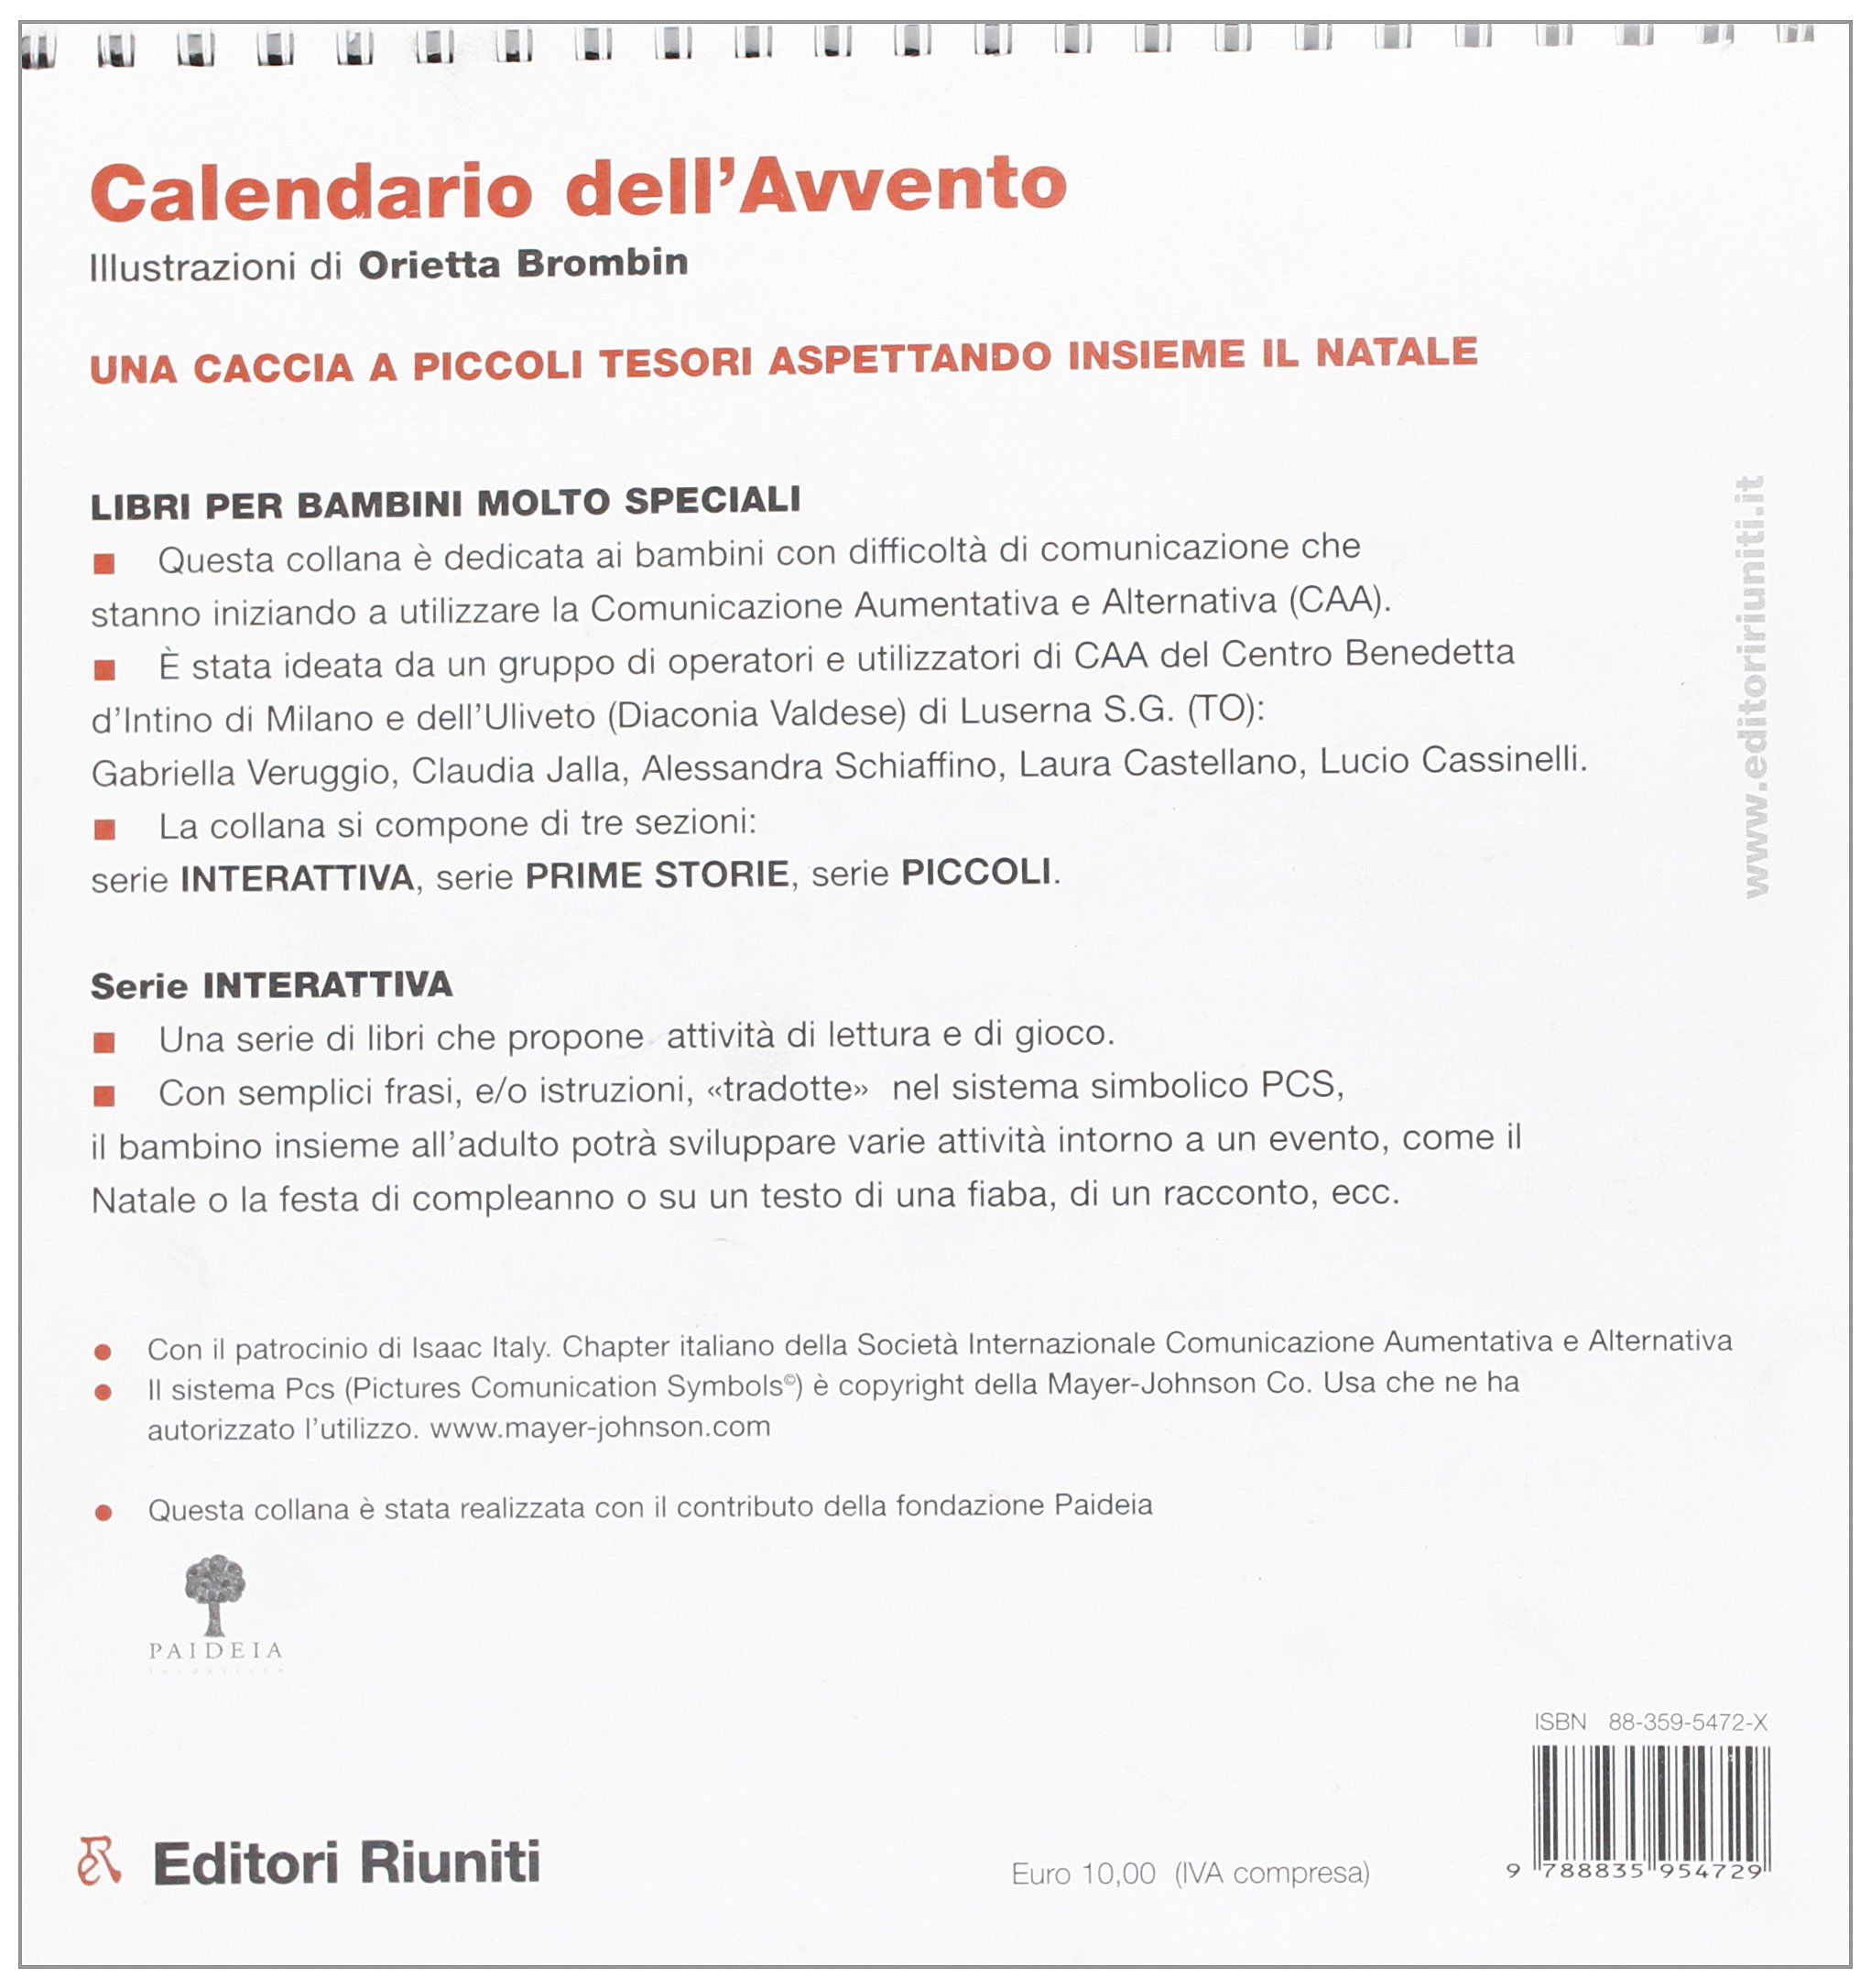 Frasi Per Calendario Avvento.Amazon It Calendario Dell Avvento Orietta Brombin Libri